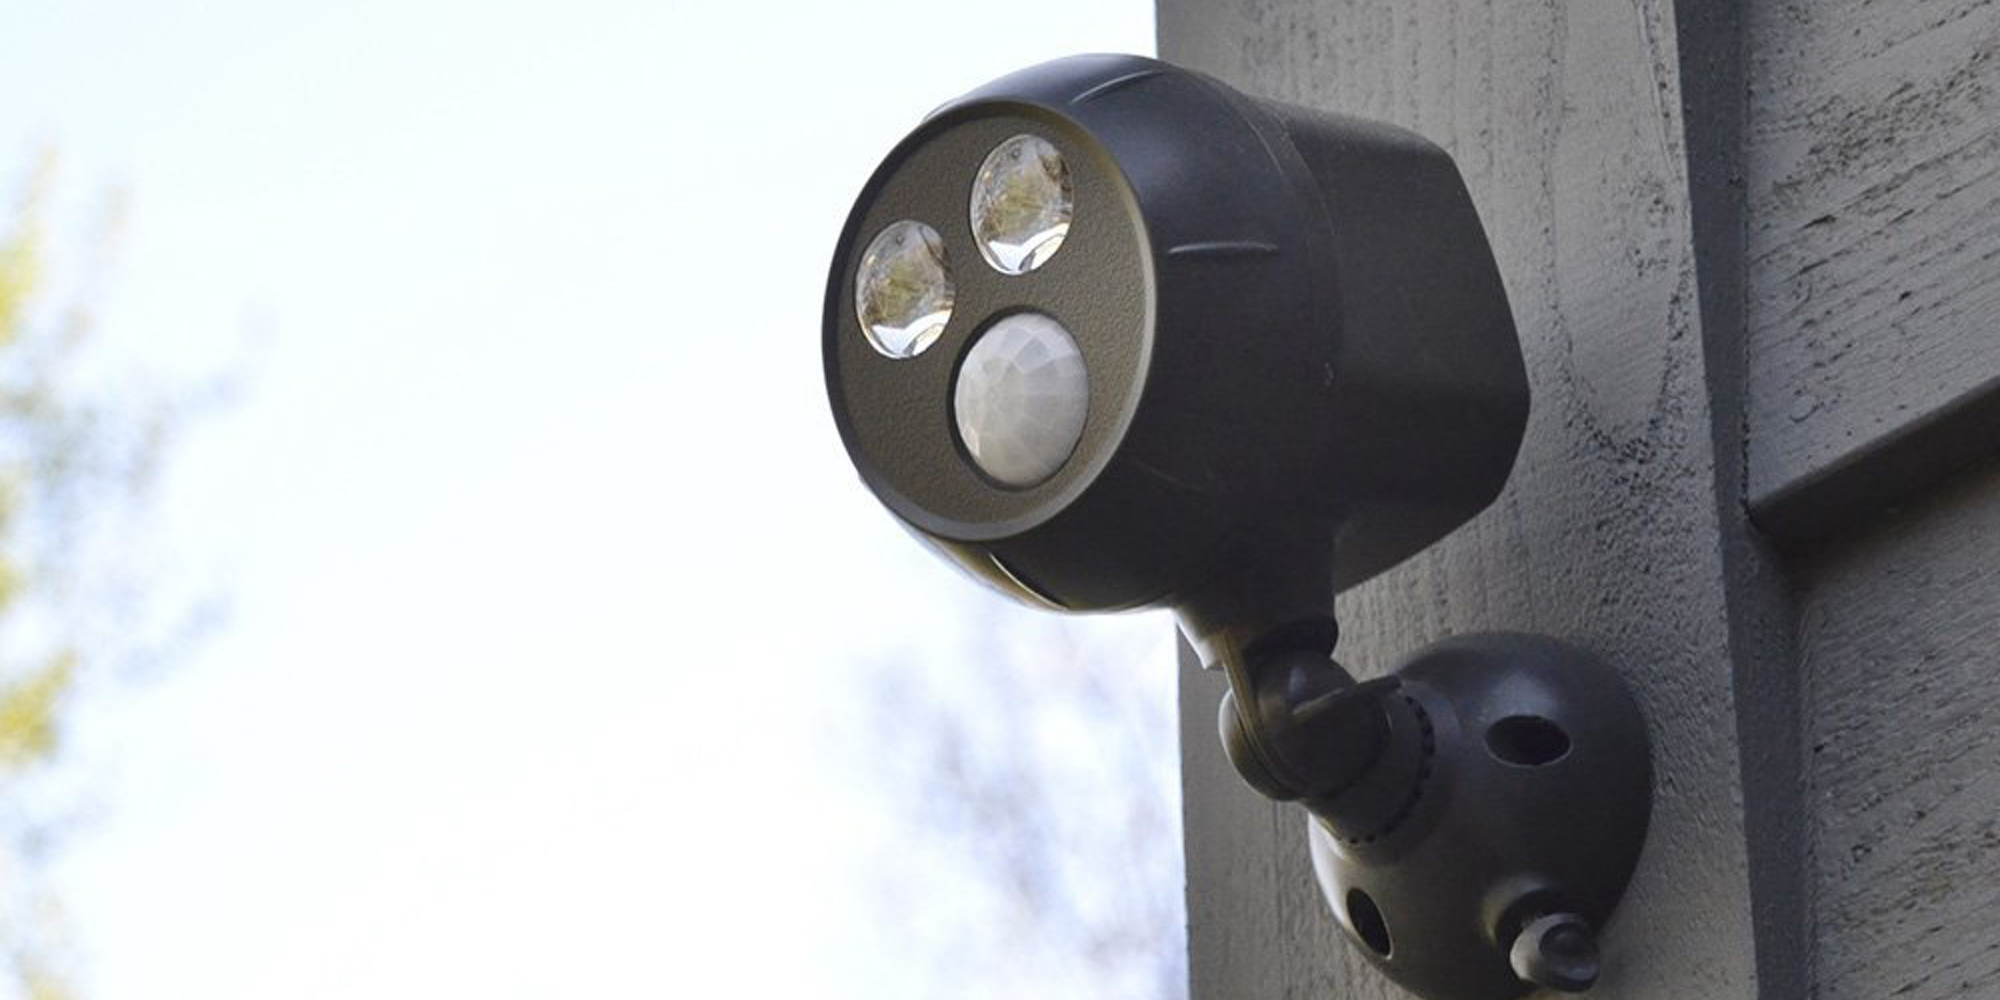 Illuminate your outdoor space with up to 50% off Mr. Beam LED Spotlights from $12 shipped